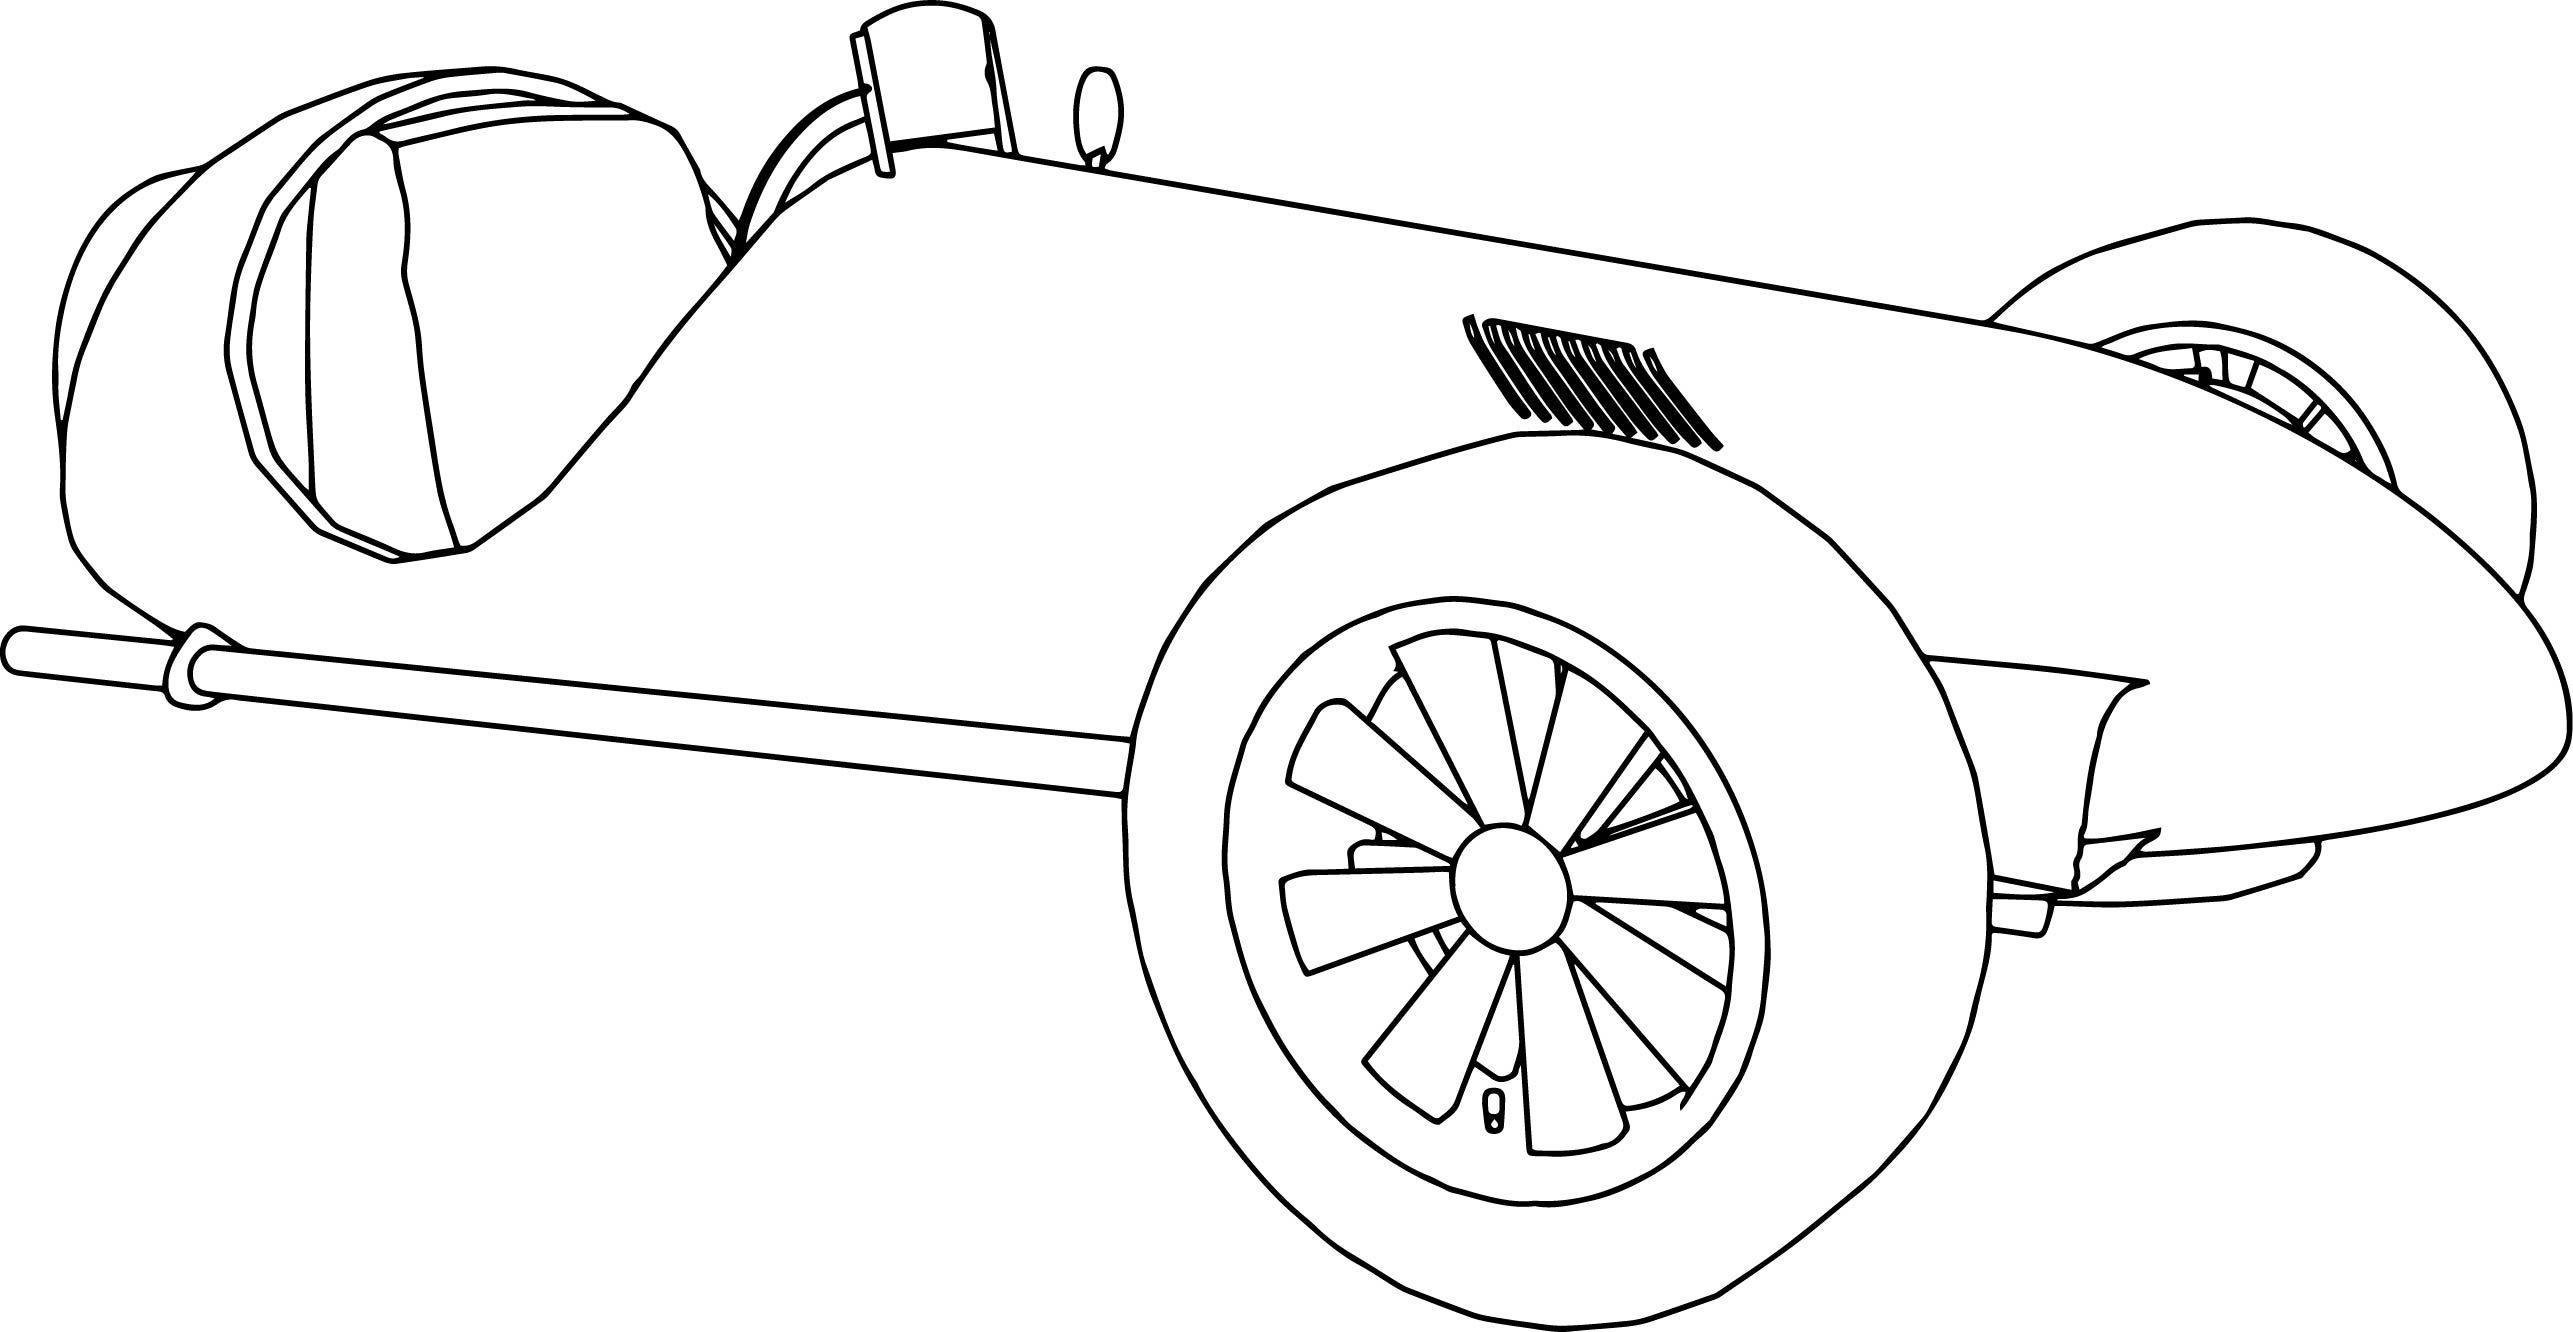 Children tricycle coloring page - Coloringcrew.com | 1332x2573